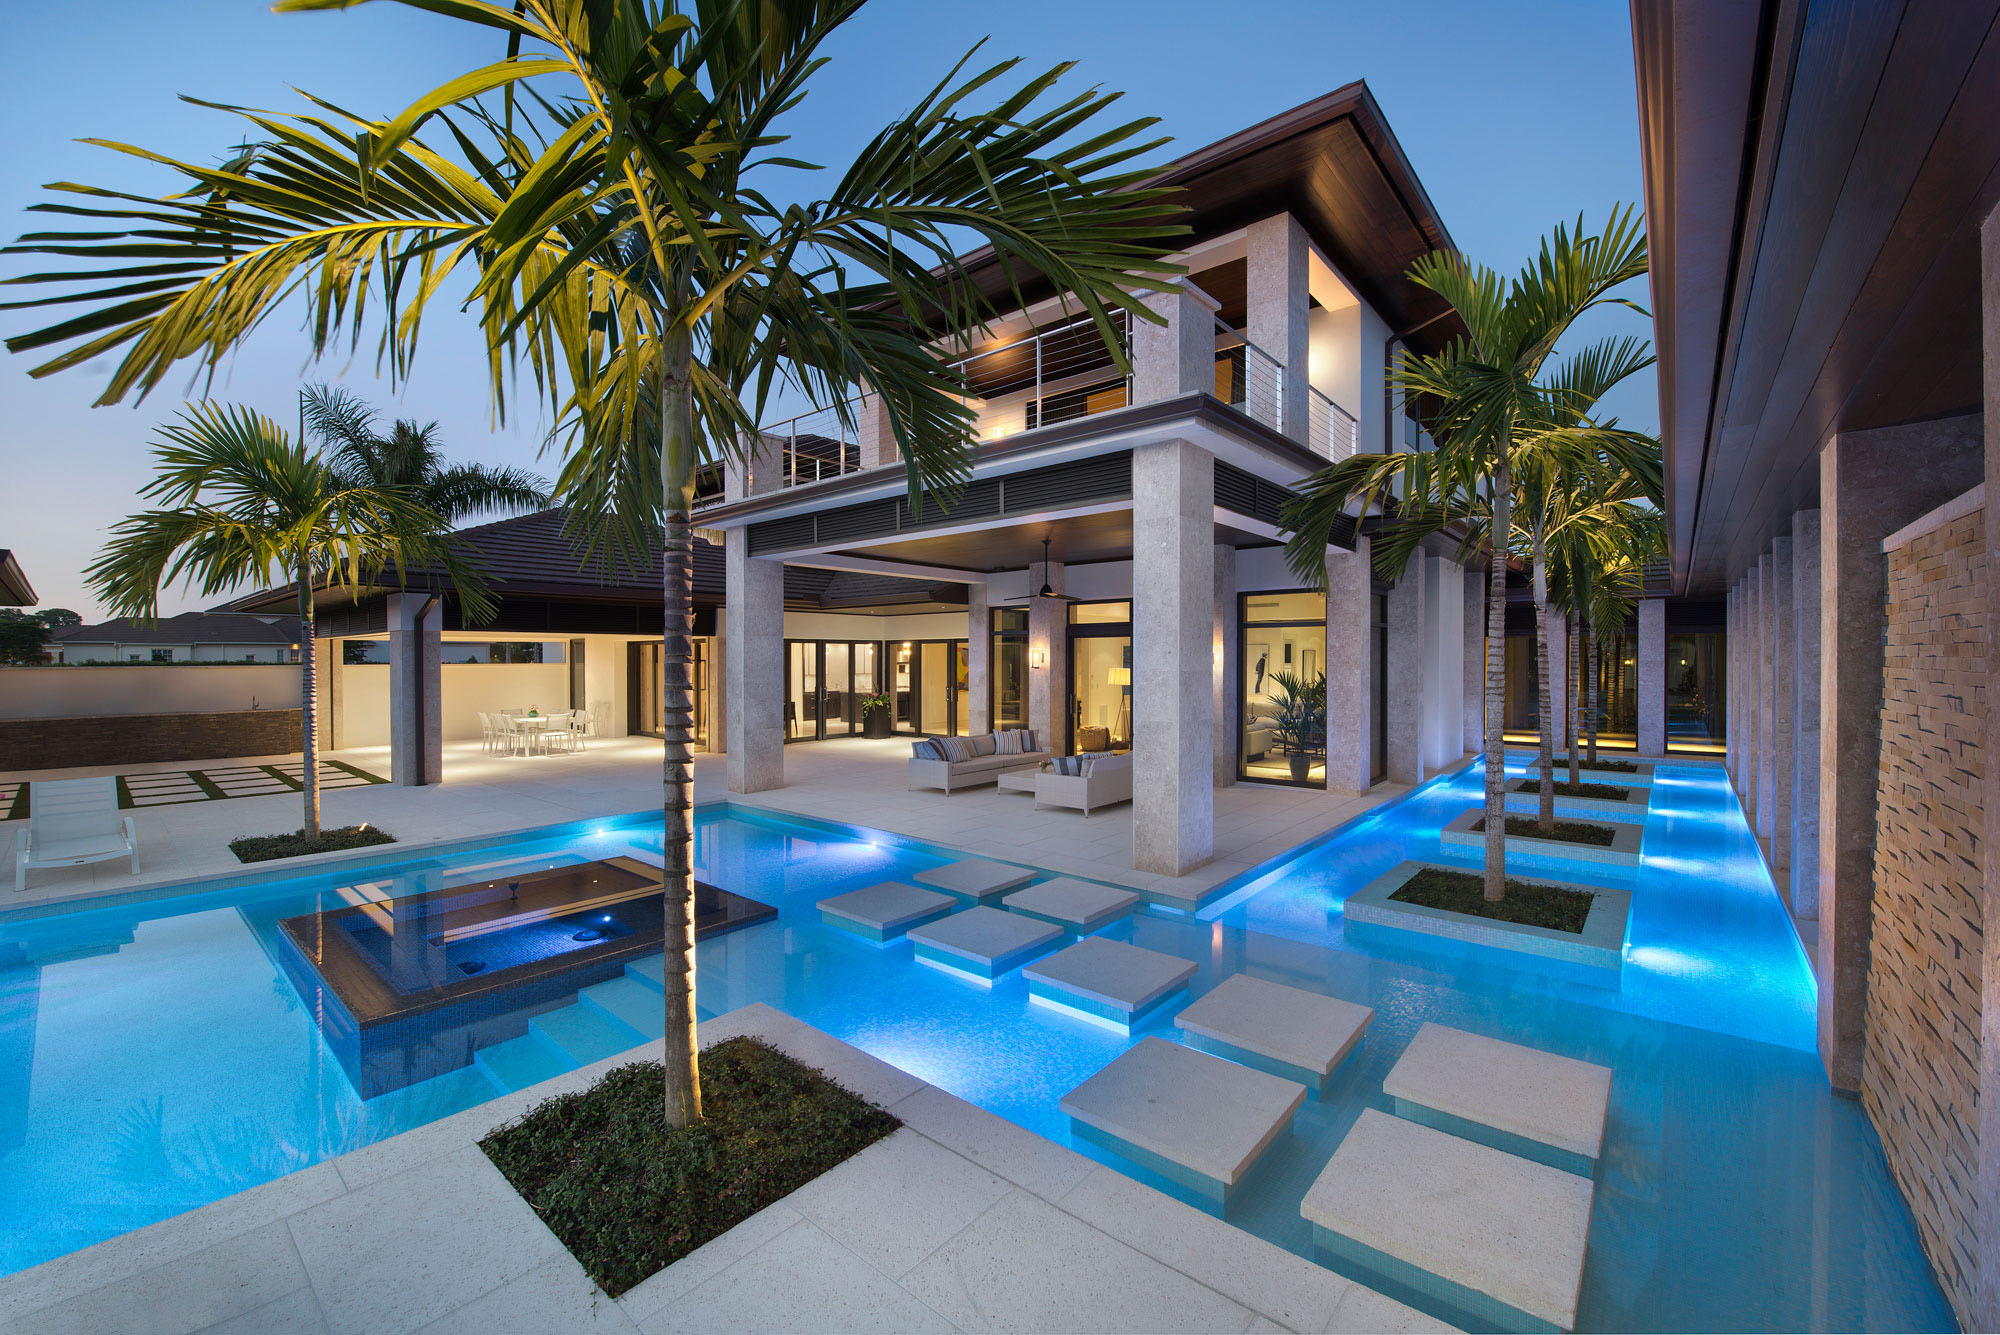 Custom dream home in florida with elegant swimming pool idesignarch interior design Custom luxury home design ideas